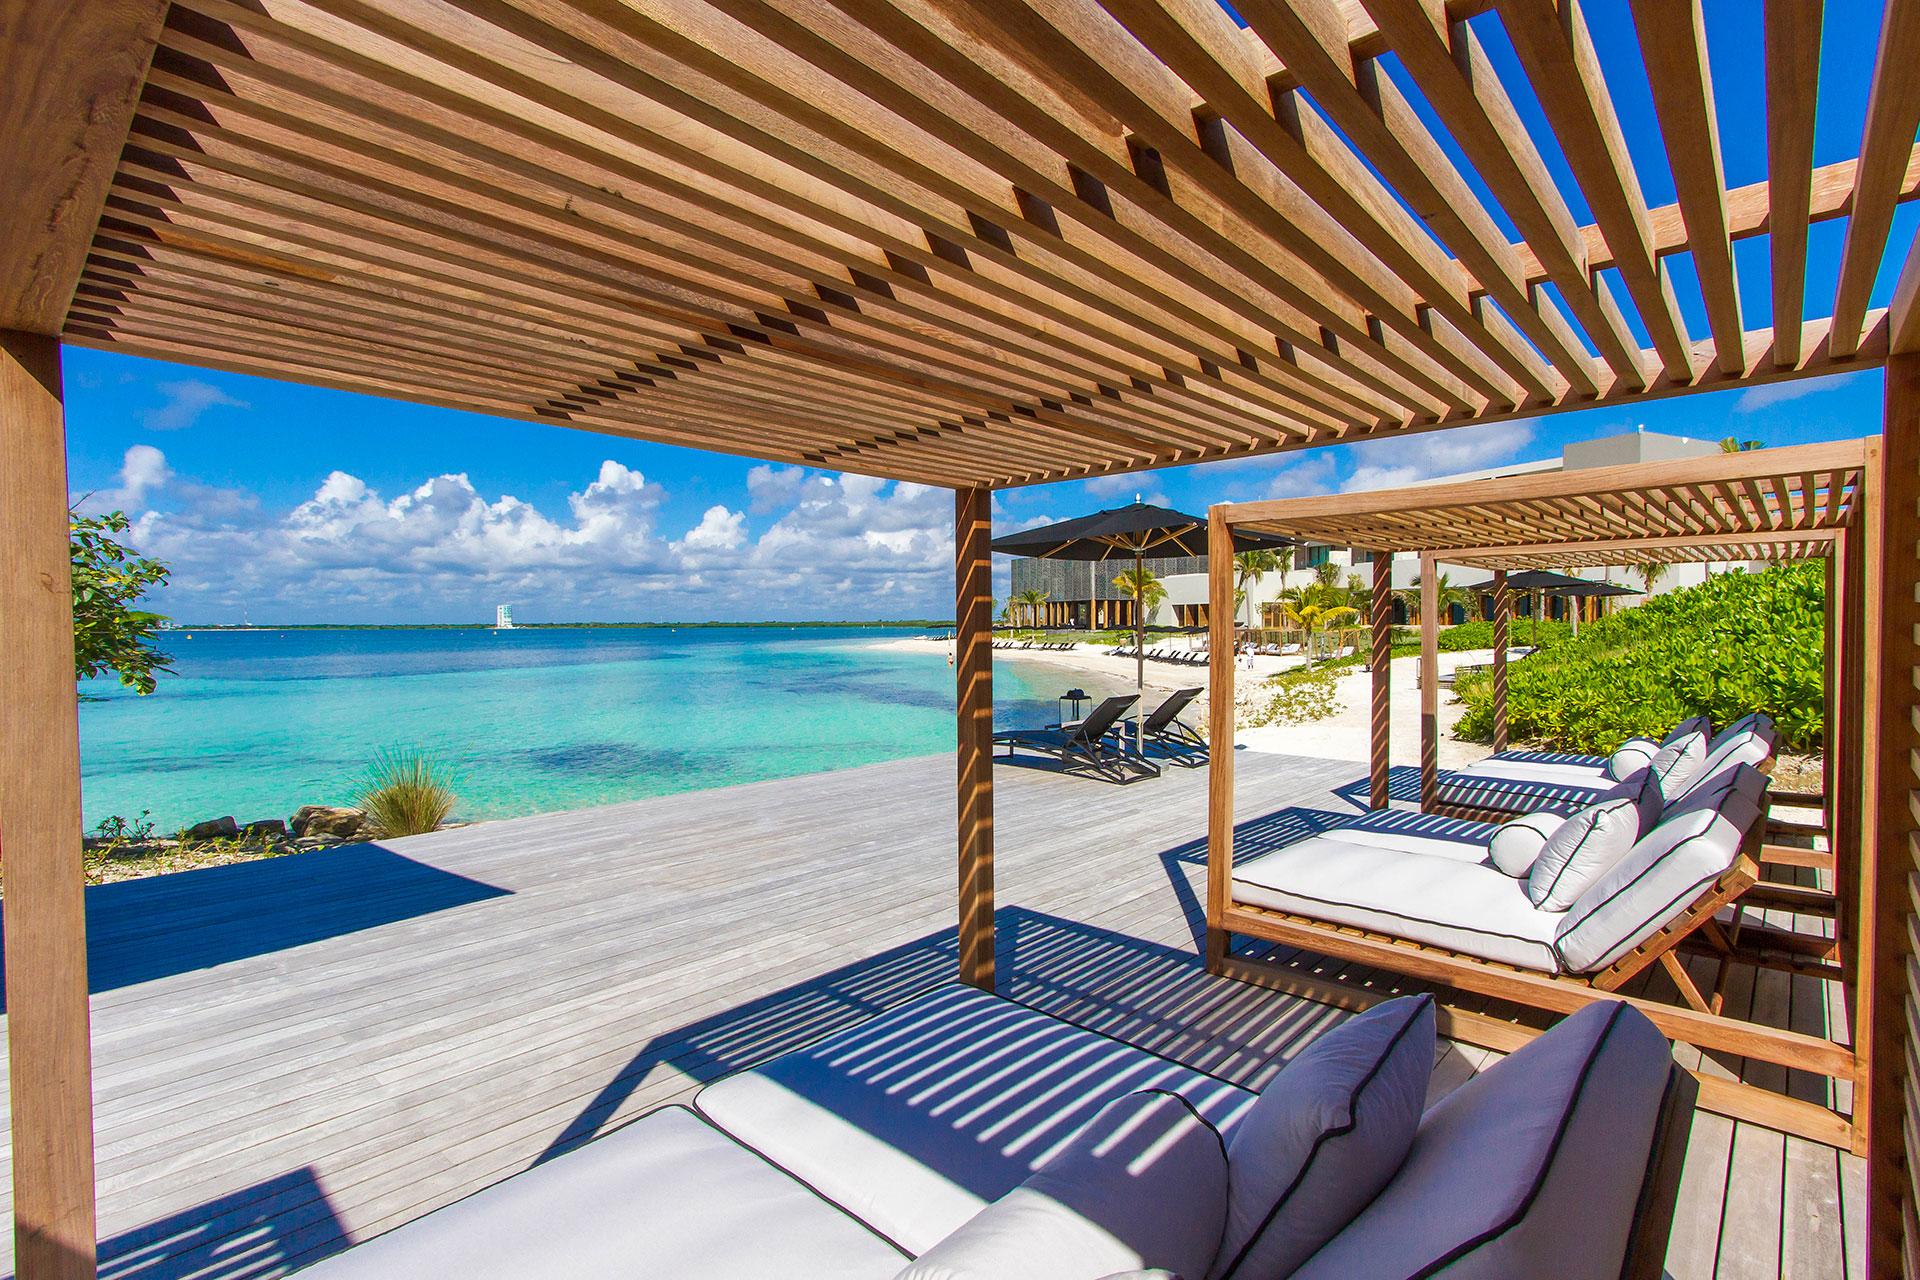 Nizuc Resort and Spa, the beach